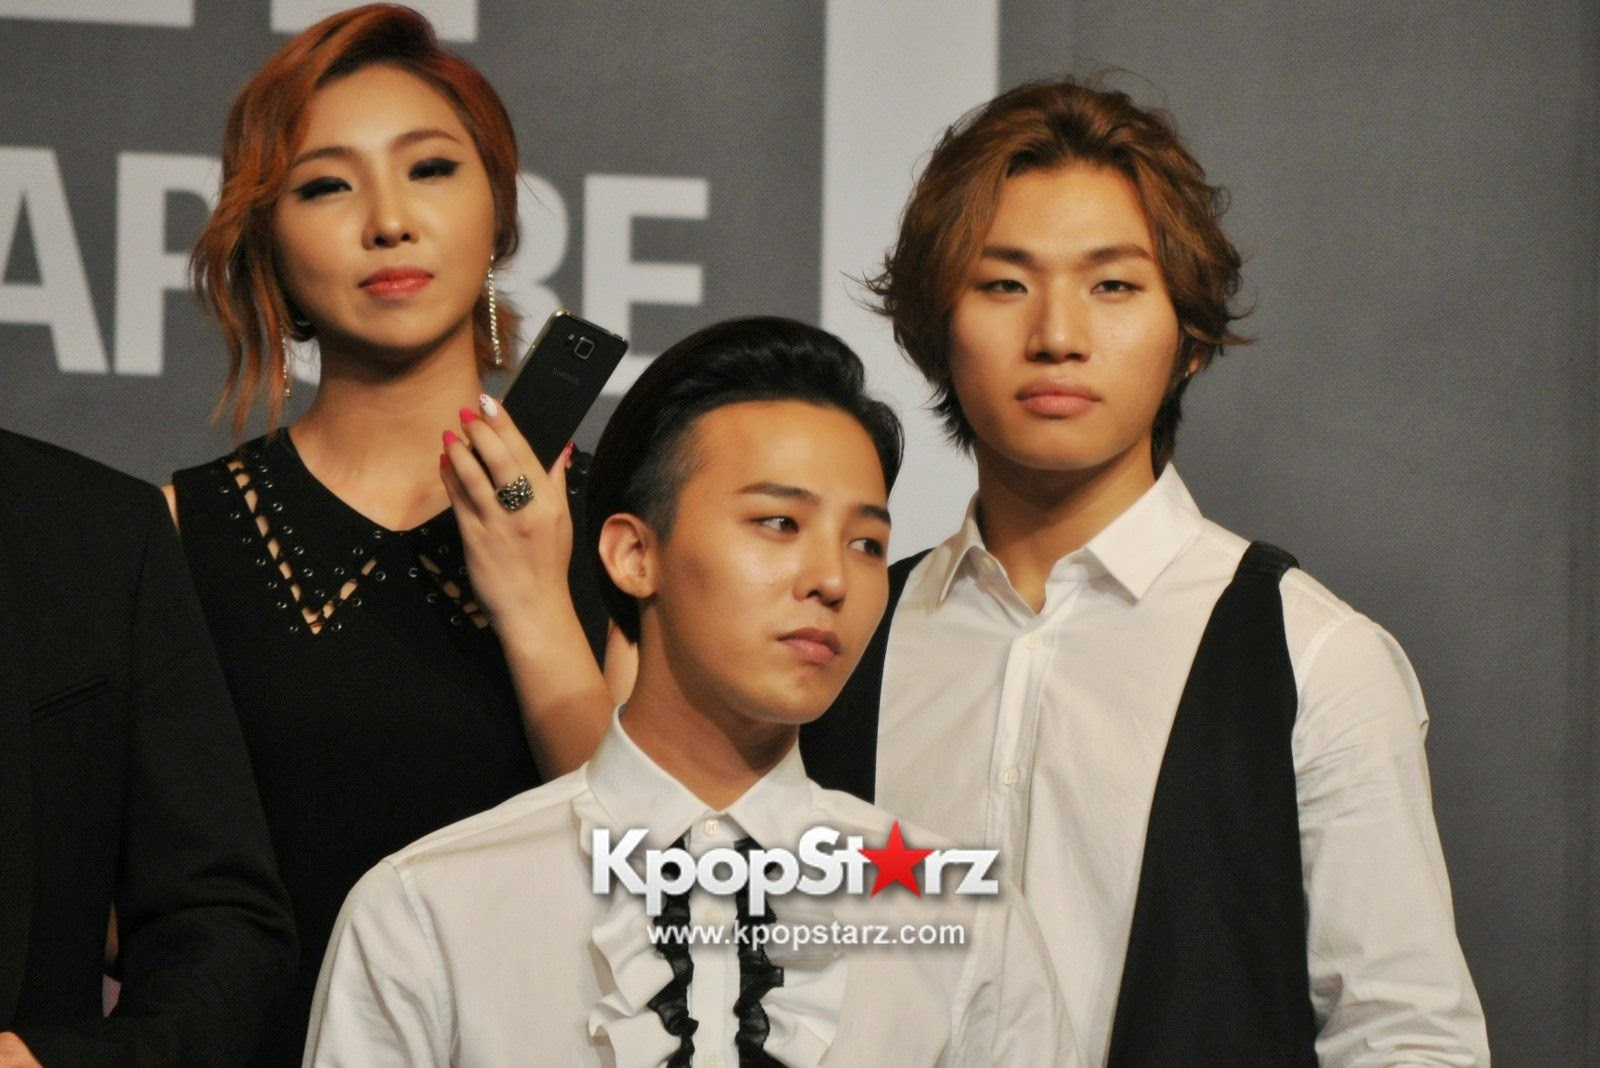 HQ: YG Family Power Tour in Singapore Press Conference (140913) [PHOTOS]  HQ: YG Family Power Tour in Singapore Press Conference (140913) [PHOTOS]  HQ: YG Family Power Tour in Singapore Press Conference (140913) [PHOTOS]  HQ: YG Family Power Tour in Singapore Press Conference (140913) [PHOTOS]  HQ: YG Family Power Tour in Singapore Press Conference (140913) [PHOTOS]  HQ: YG Family Power Tour in Singapore Press Conference (140913) [PHOTOS]  HQ: YG Family Power Tour in Singapore Press Conference (140913) [PHOTOS]  HQ: YG Family Power Tour in Singapore Press Conference (140913) [PHOTOS]  HQ: YG Family Power Tour in Singapore Press Conference (140913) [PHOTOS]  HQ: YG Family Power Tour in Singapore Press Conference (140913) [PHOTOS]  HQ: YG Family Power Tour in Singapore Press Conference (140913) [PHOTOS]  HQ: YG Family Power Tour in Singapore Press Conference (140913) [PHOTOS]  HQ: YG Family Power Tour in Singapore Press Conference (140913) [PHOTOS]  HQ: YG Family Power Tour in Singapore Press Conference (140913) [PHOTOS]  HQ: YG Family Power Tour in Singapore Press Conference (140913) [PHOTOS]  HQ: YG Family Power Tour in Singapore Press Conference (140913) [PHOTOS]  HQ: YG Family Power Tour in Singapore Press Conference (140913) [PHOTOS]  HQ: YG Family Power Tour in Singapore Press Conference (140913) [PHOTOS]  HQ: YG Family Power Tour in Singapore Press Conference (140913) [PHOTOS]  HQ: YG Family Power Tour in Singapore Press Conference (140913) [PHOTOS]  HQ: YG Family Power Tour in Singapore Press Conference (140913) [PHOTOS]  HQ: YG Family Power Tour in Singapore Press Conference (140913) [PHOTOS]  HQ: YG Family Power Tour in Singapore Press Conference (140913) [PHOTOS]  HQ: YG Family Power Tour in Singapore Press Conference (140913) [PHOTOS]  HQ: YG Family Power Tour in Singapore Press Conference (140913) [PHOTOS]  HQ: YG Family Power Tour in Singapore Press Conference (140913) [PHOTOS]  HQ: YG Family Power Tour in Singapore Press Conference (140913) [PHOTOS]  HQ